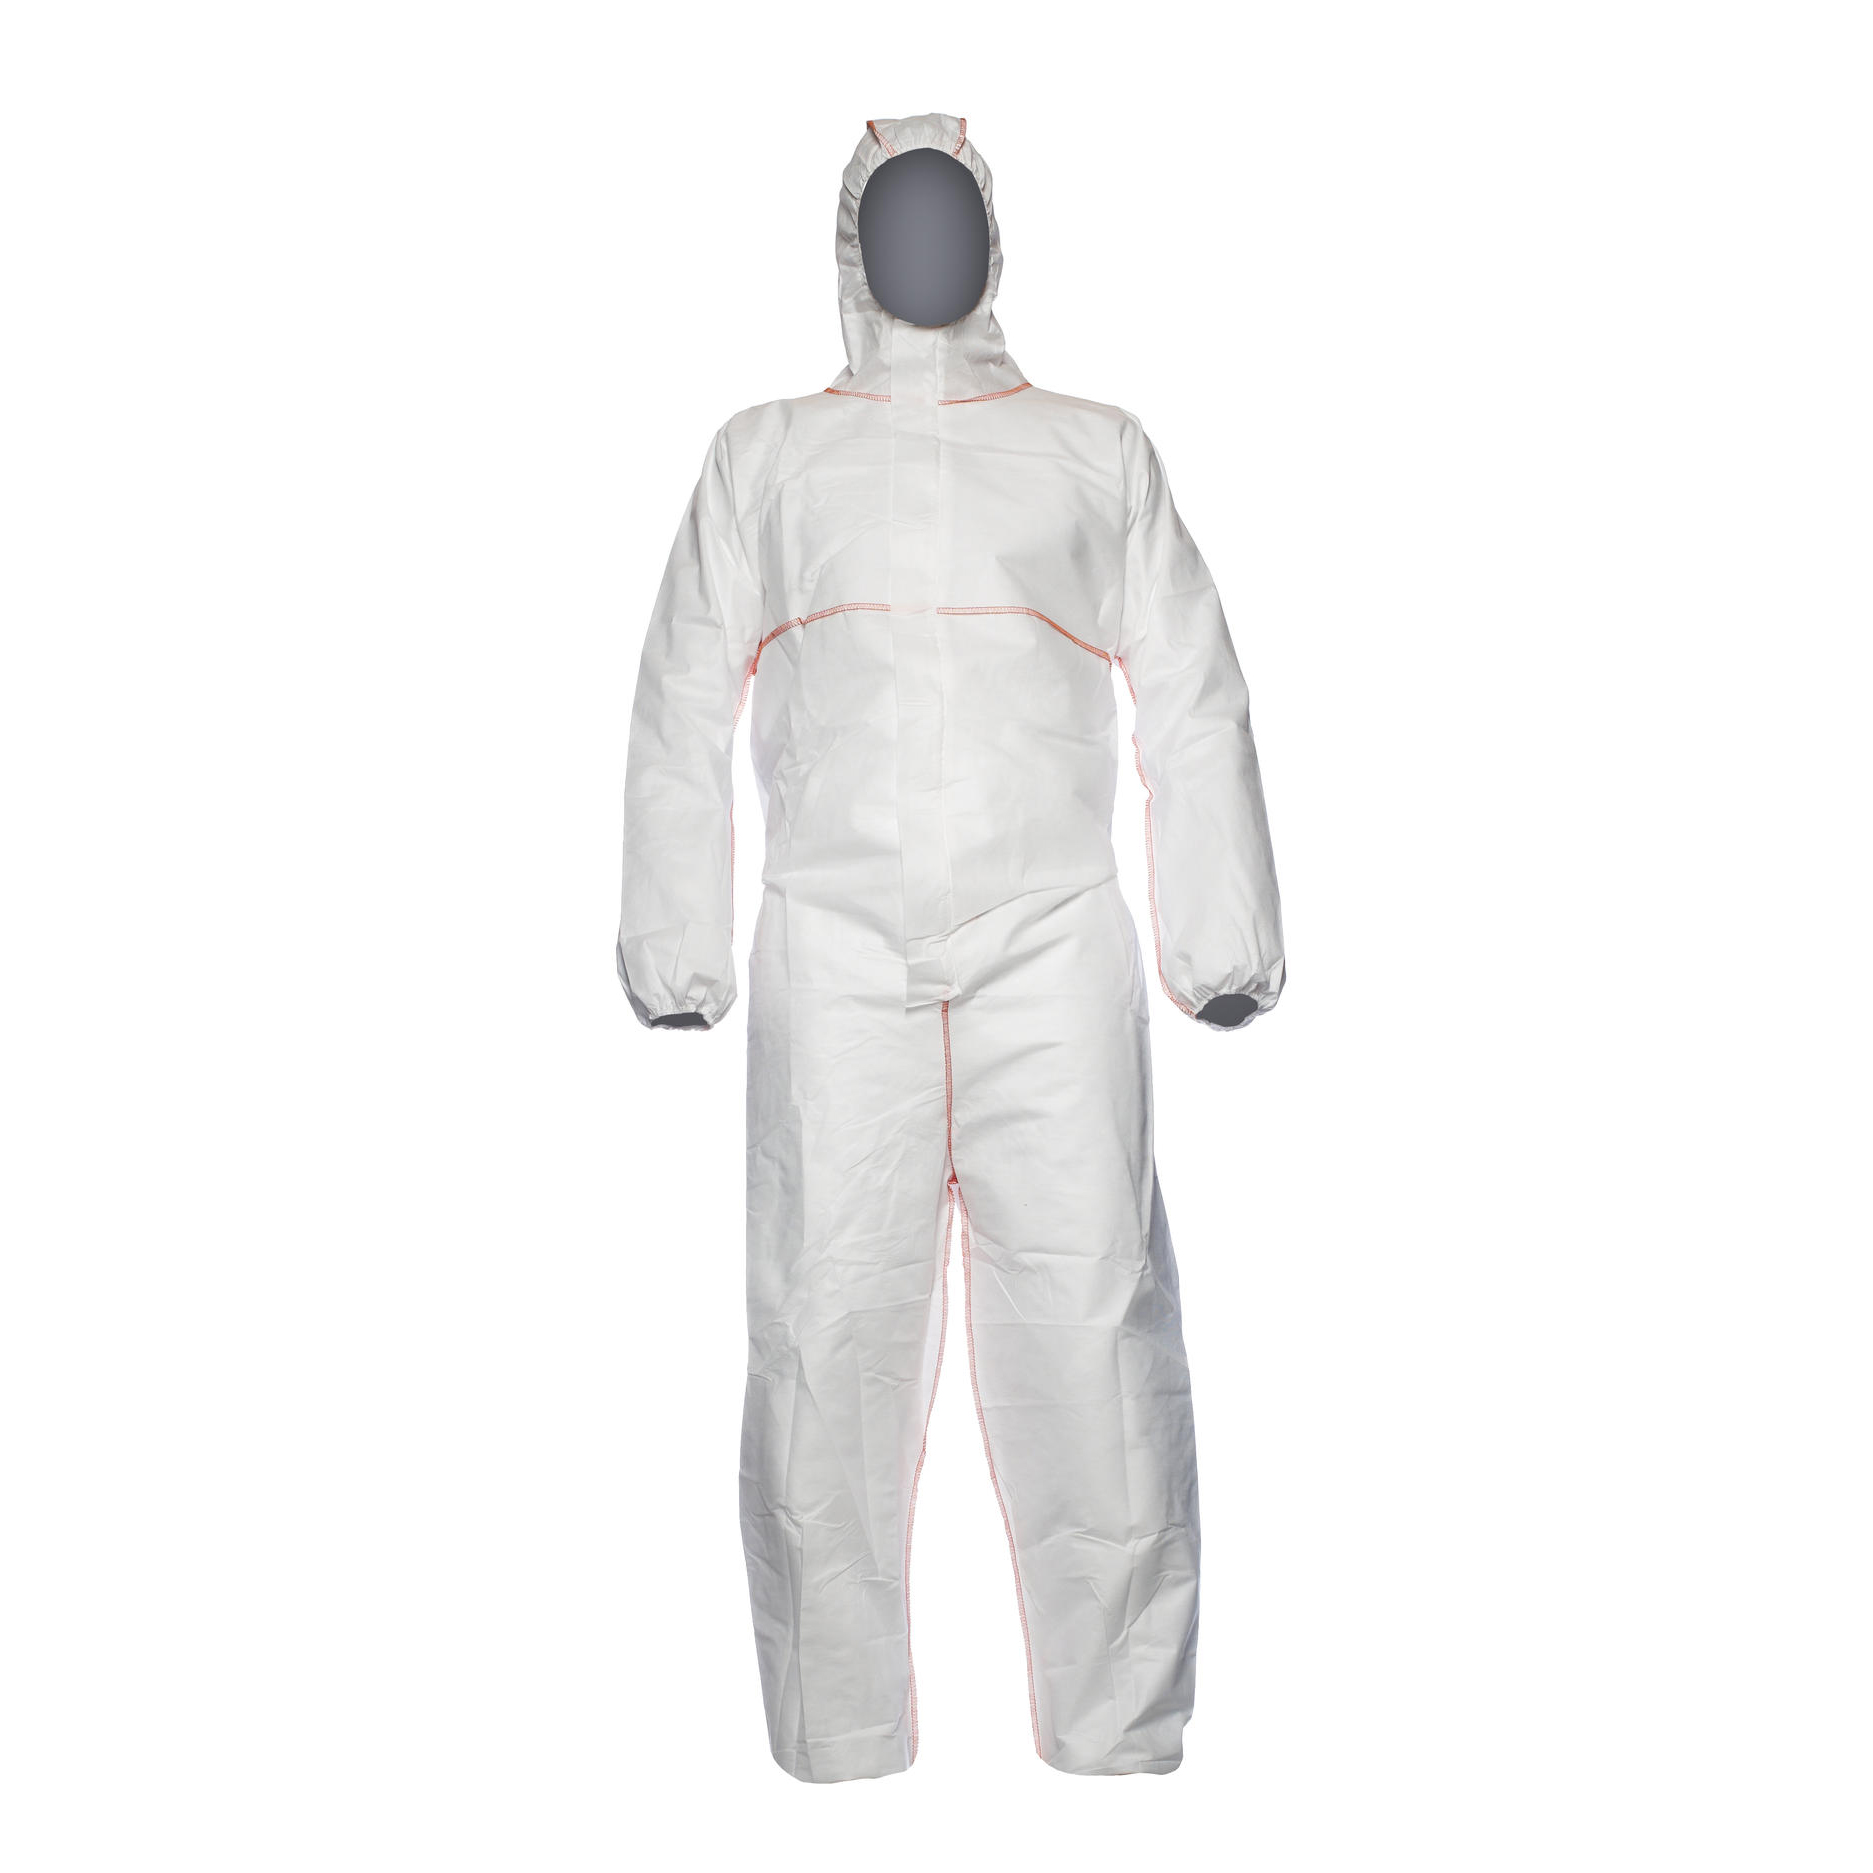 Proshield Fire Resistant Coveralls White XL Ref PROFRXL Up to 3 Day Leadtime